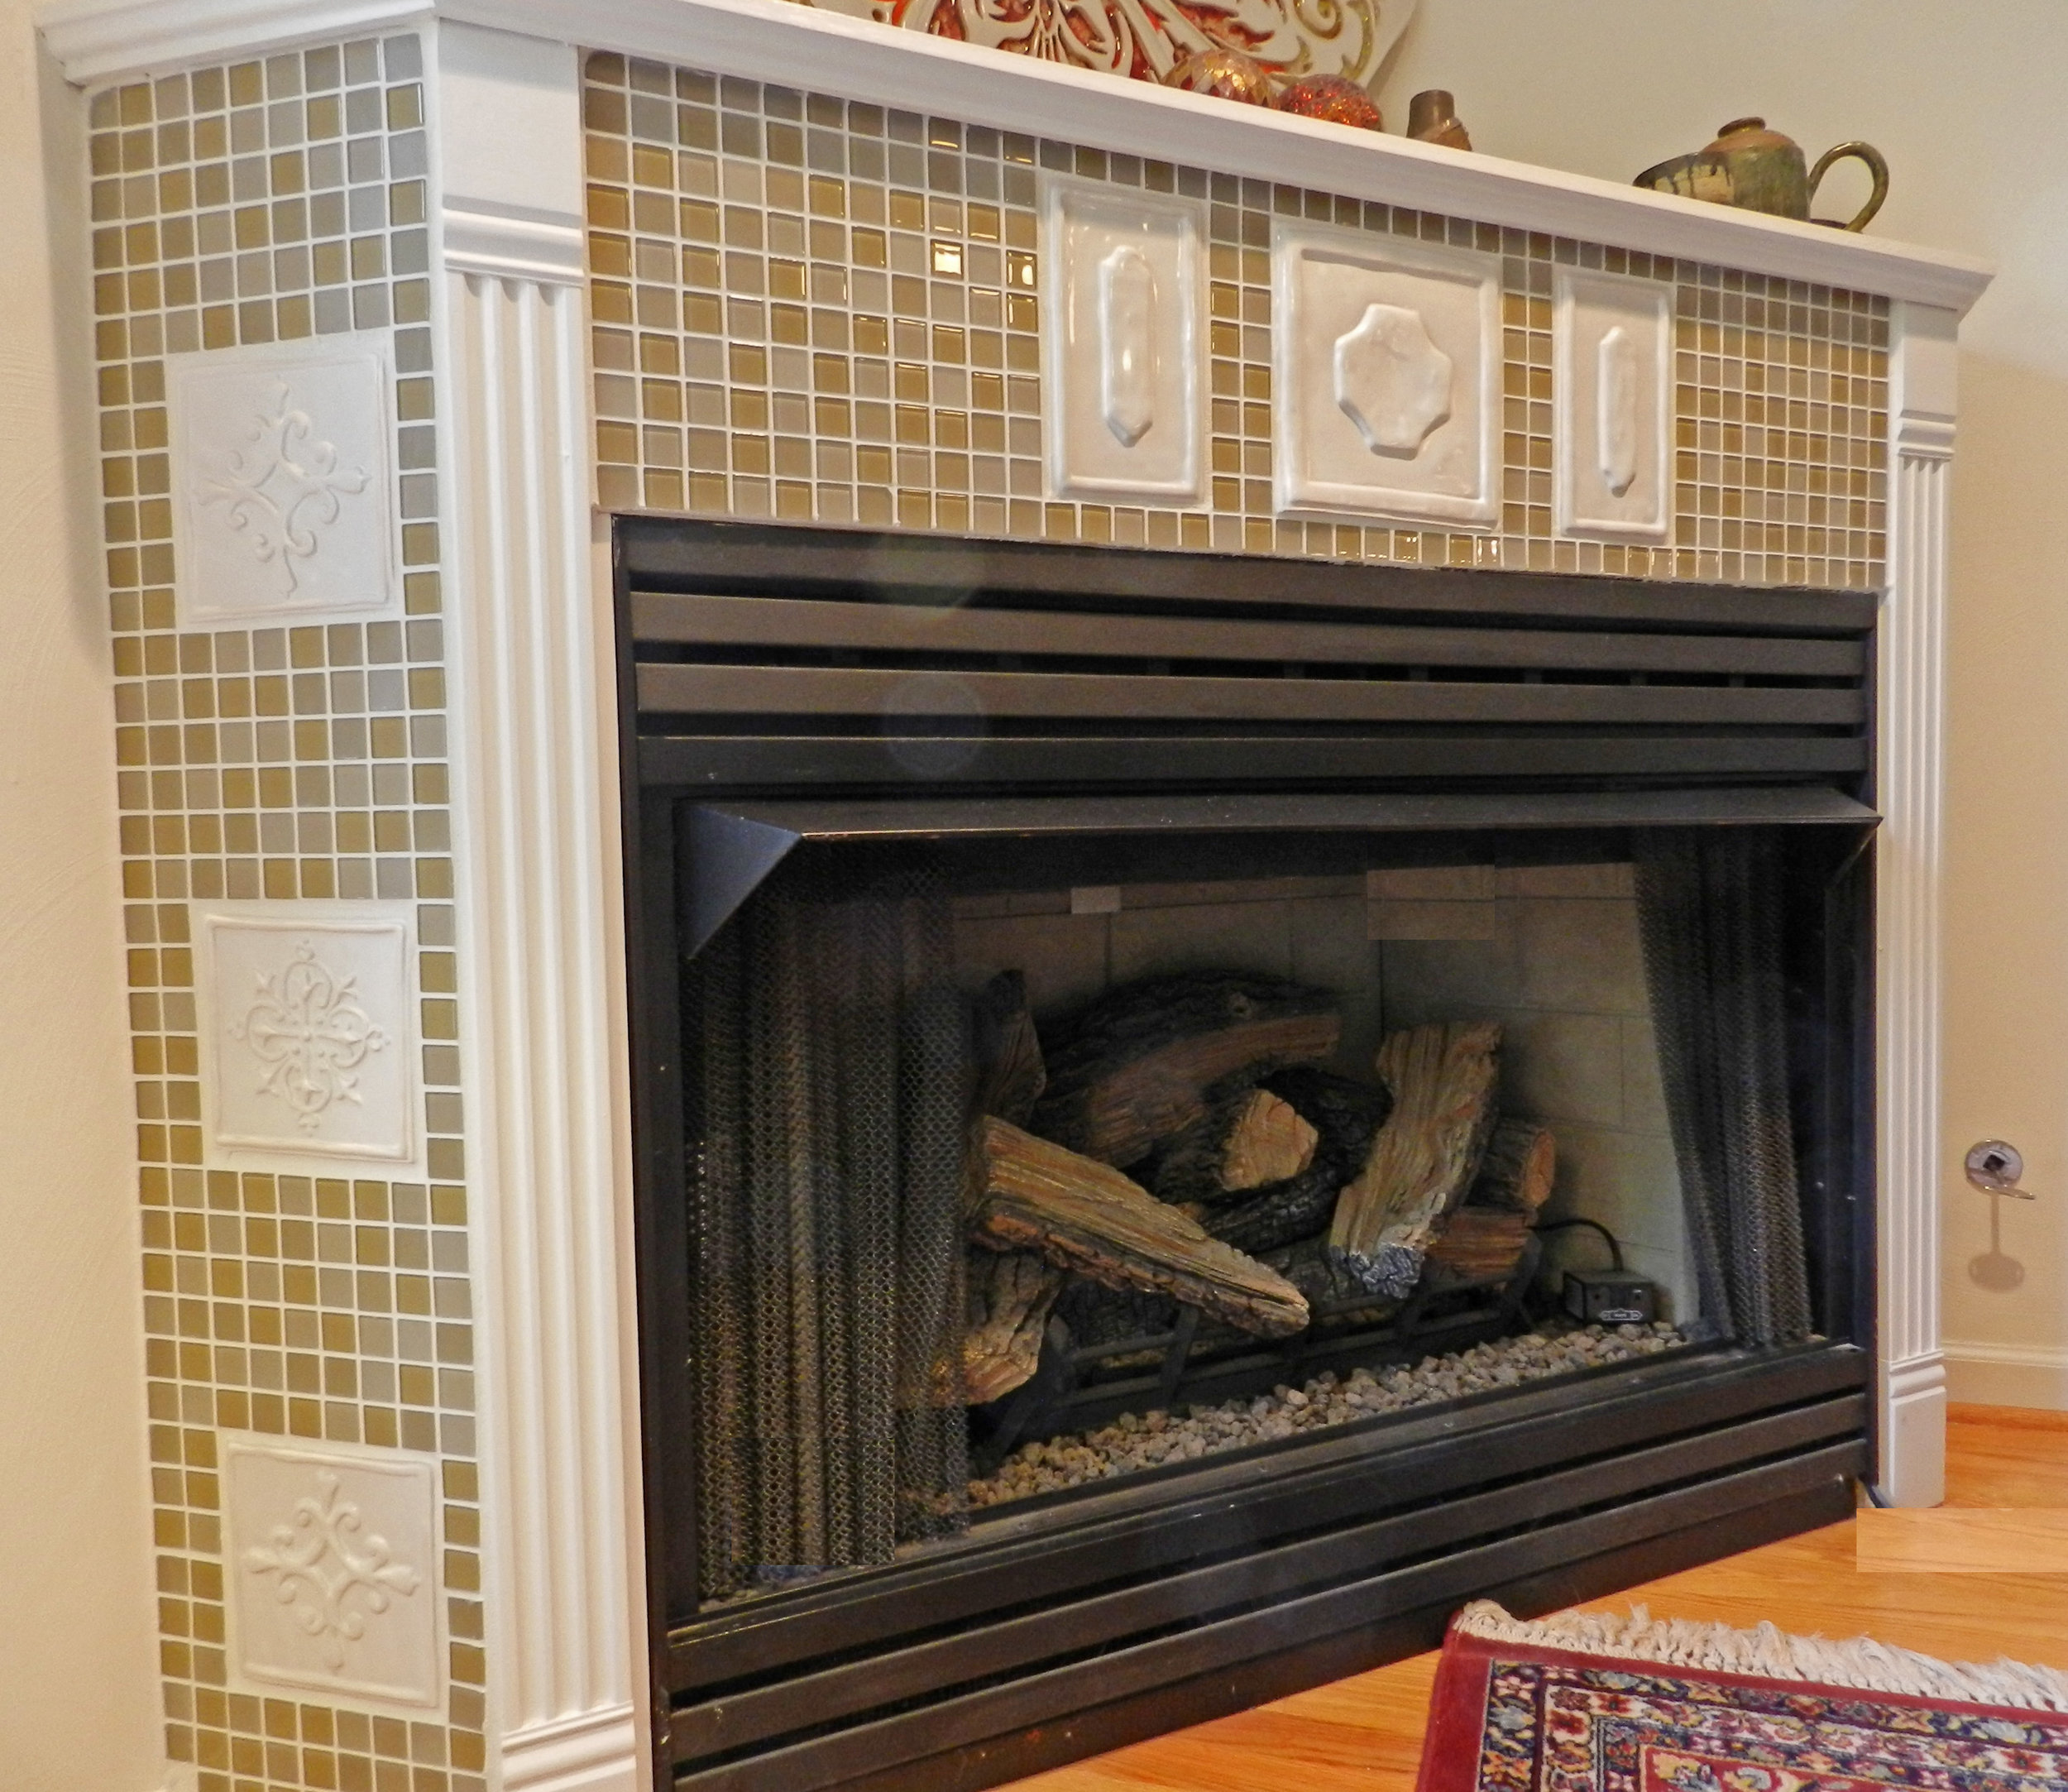 Fireplace Side HESP-FRQTR.jpg